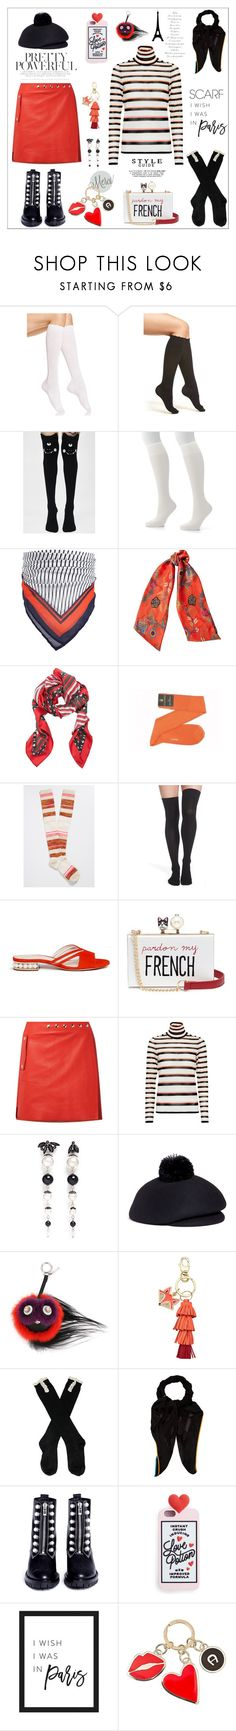 """Paris Scarf"" by yours-styling-best-friend on Polyvore featuring HUE, Nordstrom, Killstar, Hanes, Forever 21, Etro, Fendi, maurices, Nicholas Kirkwood and Cecilia Ma"